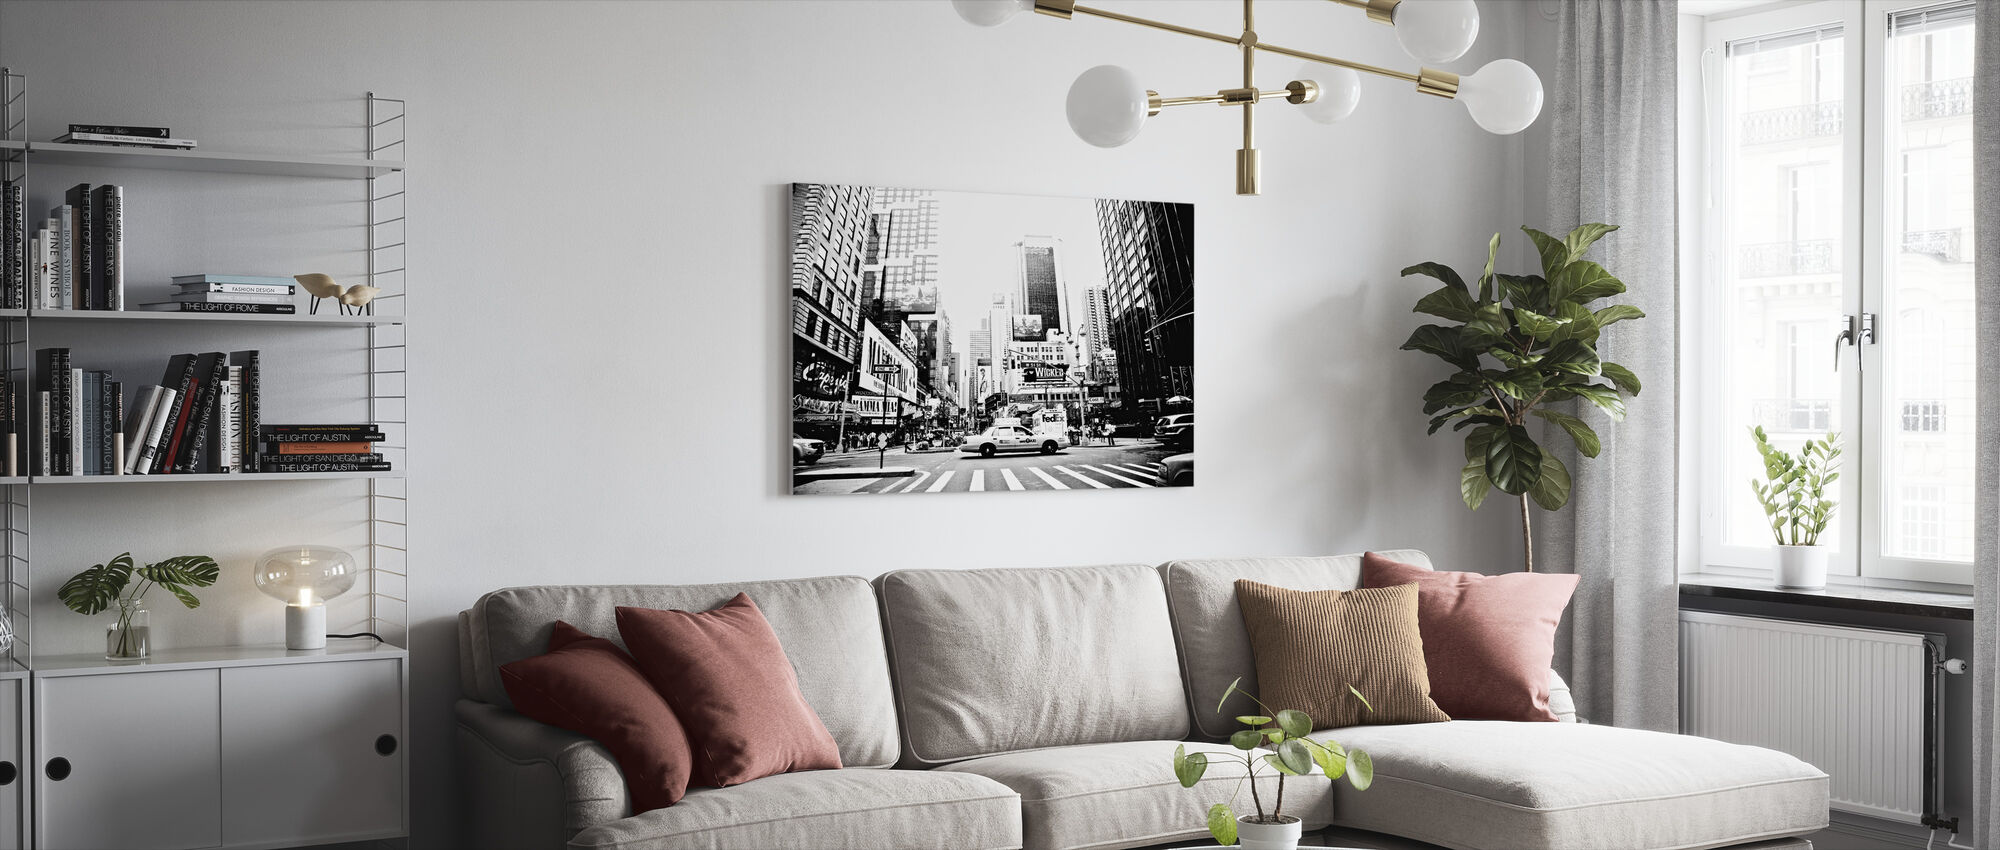 Busy Times Square, New York - Canvas print - Living Room